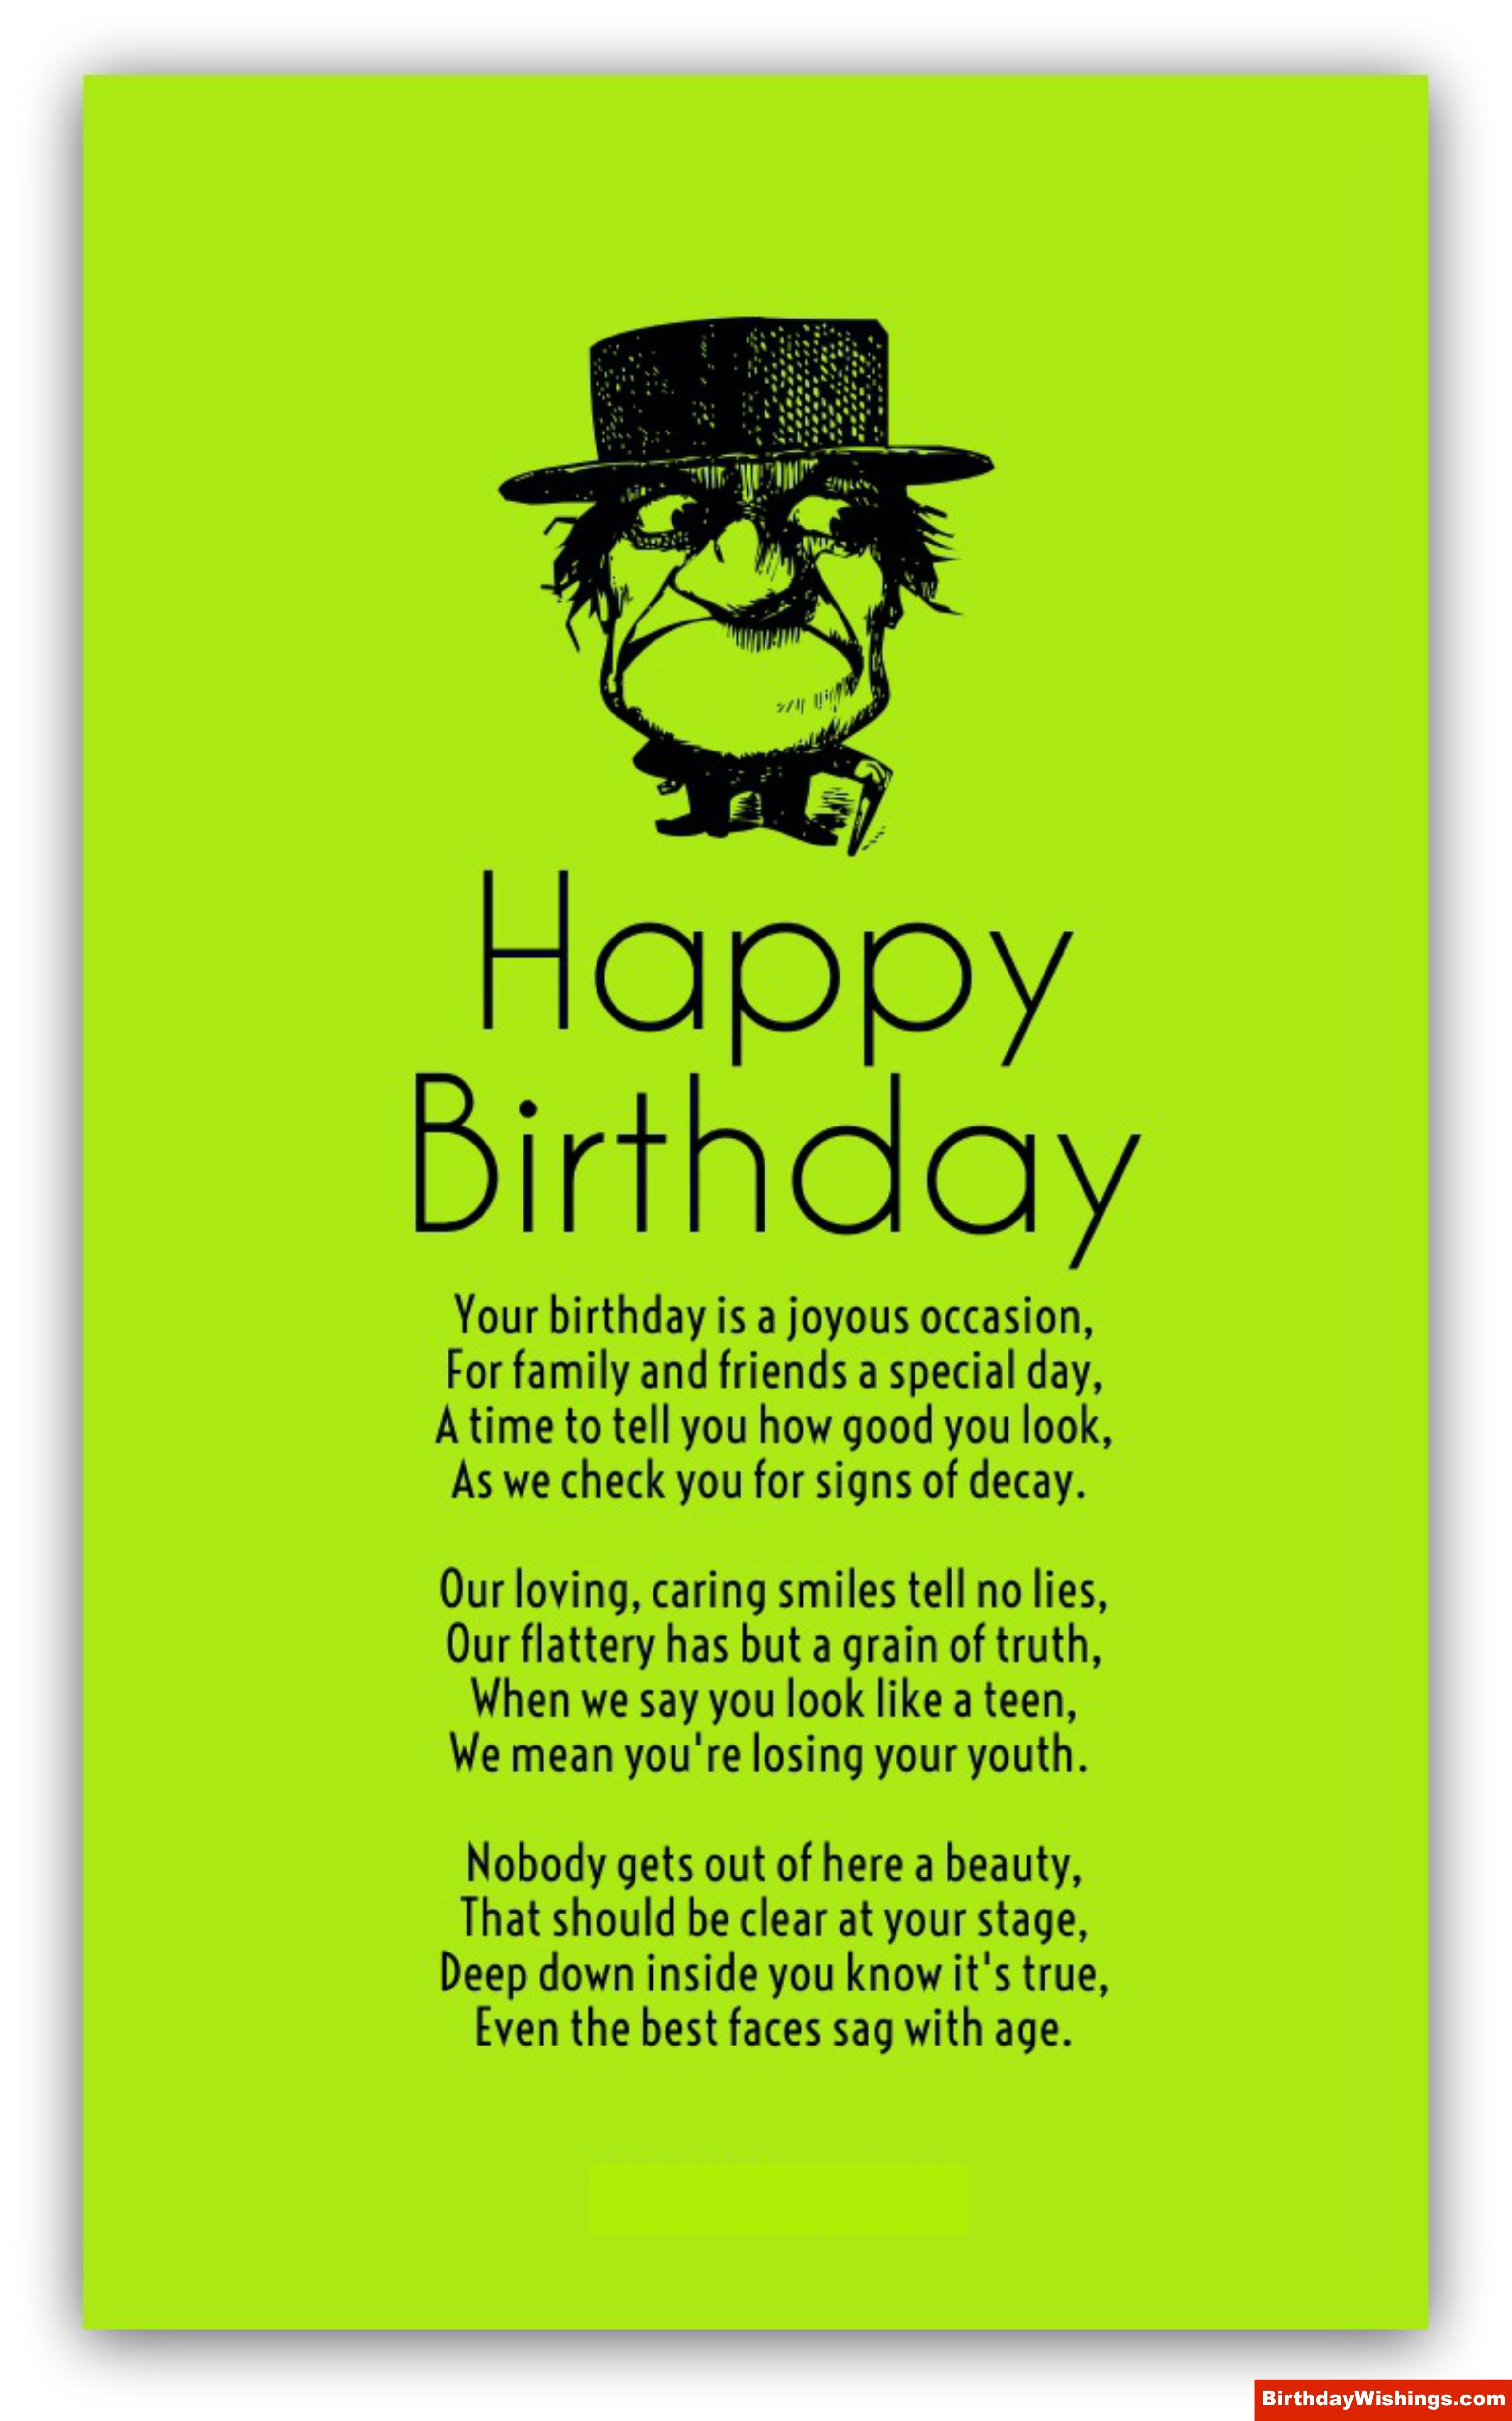 Find Out These Beautiful Old Age Birthday Poems For Your Loved Ones Your Birthday Is Joyous Occasion For Fami Funny Birthday Poems Birthday Poems Funny Poems